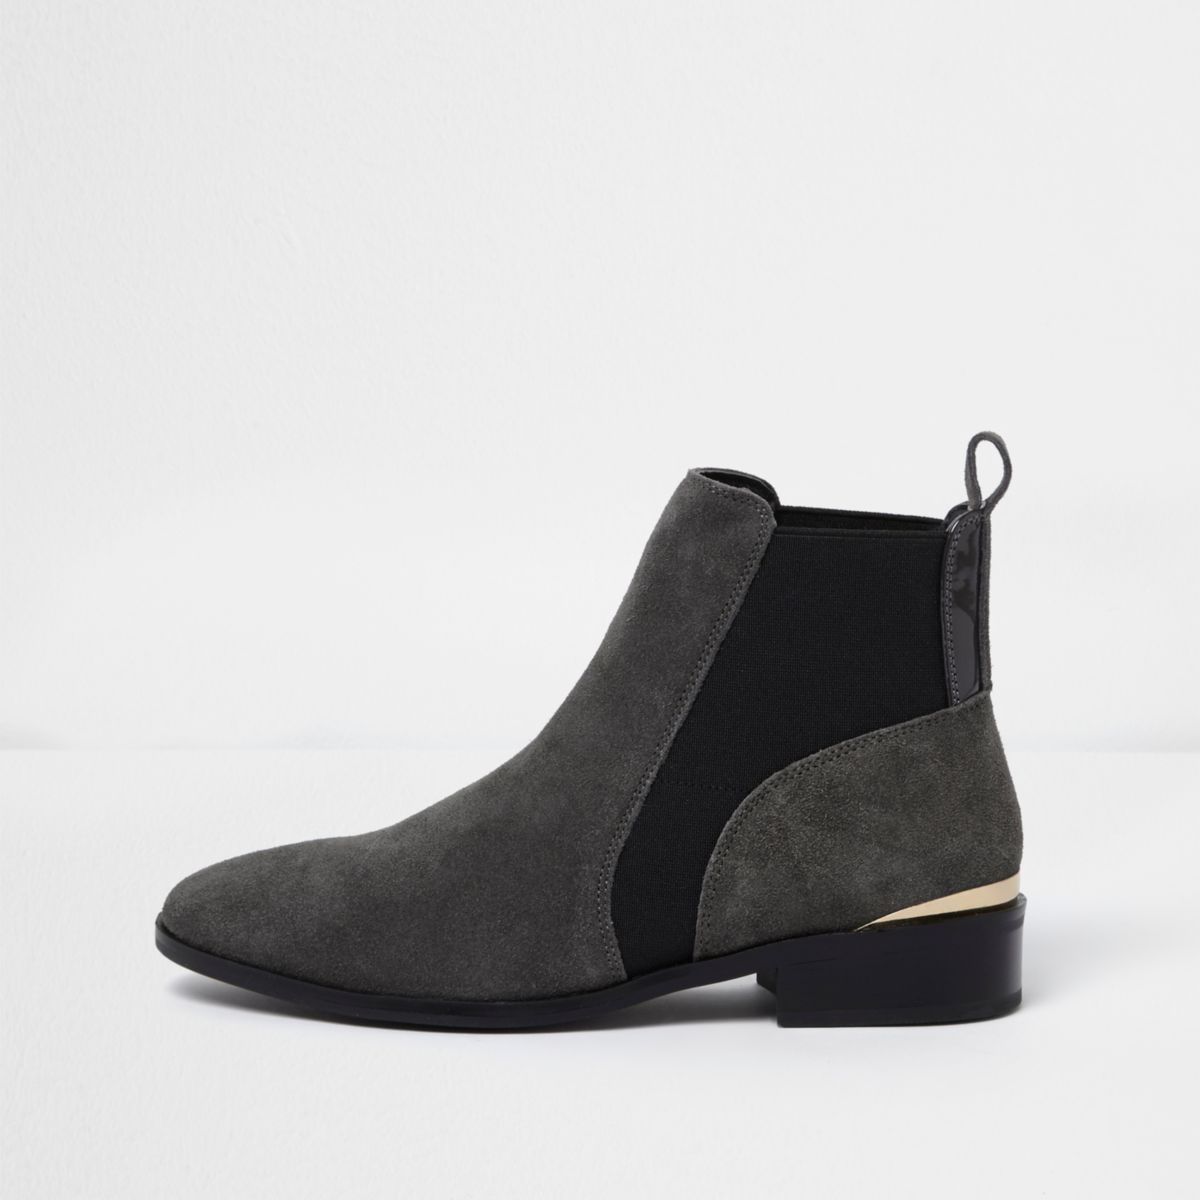 grey suede gold trim chelsea boots boots shoes boots